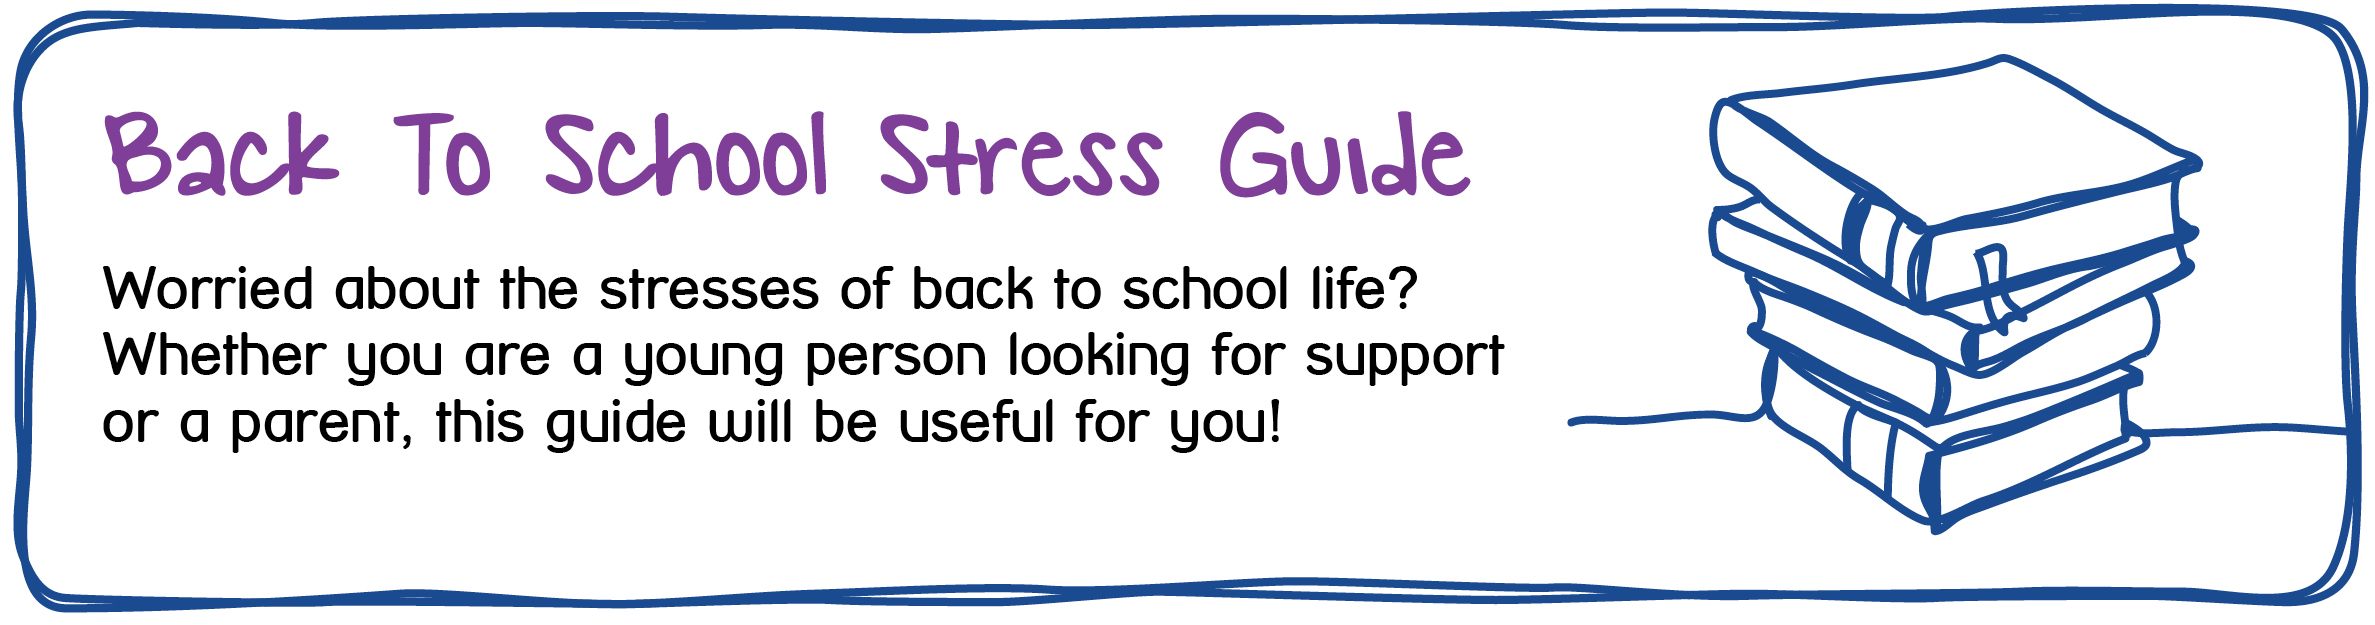 Back To School Stress Guide - this guide is designed to support young people with the stress being back at home can cause,